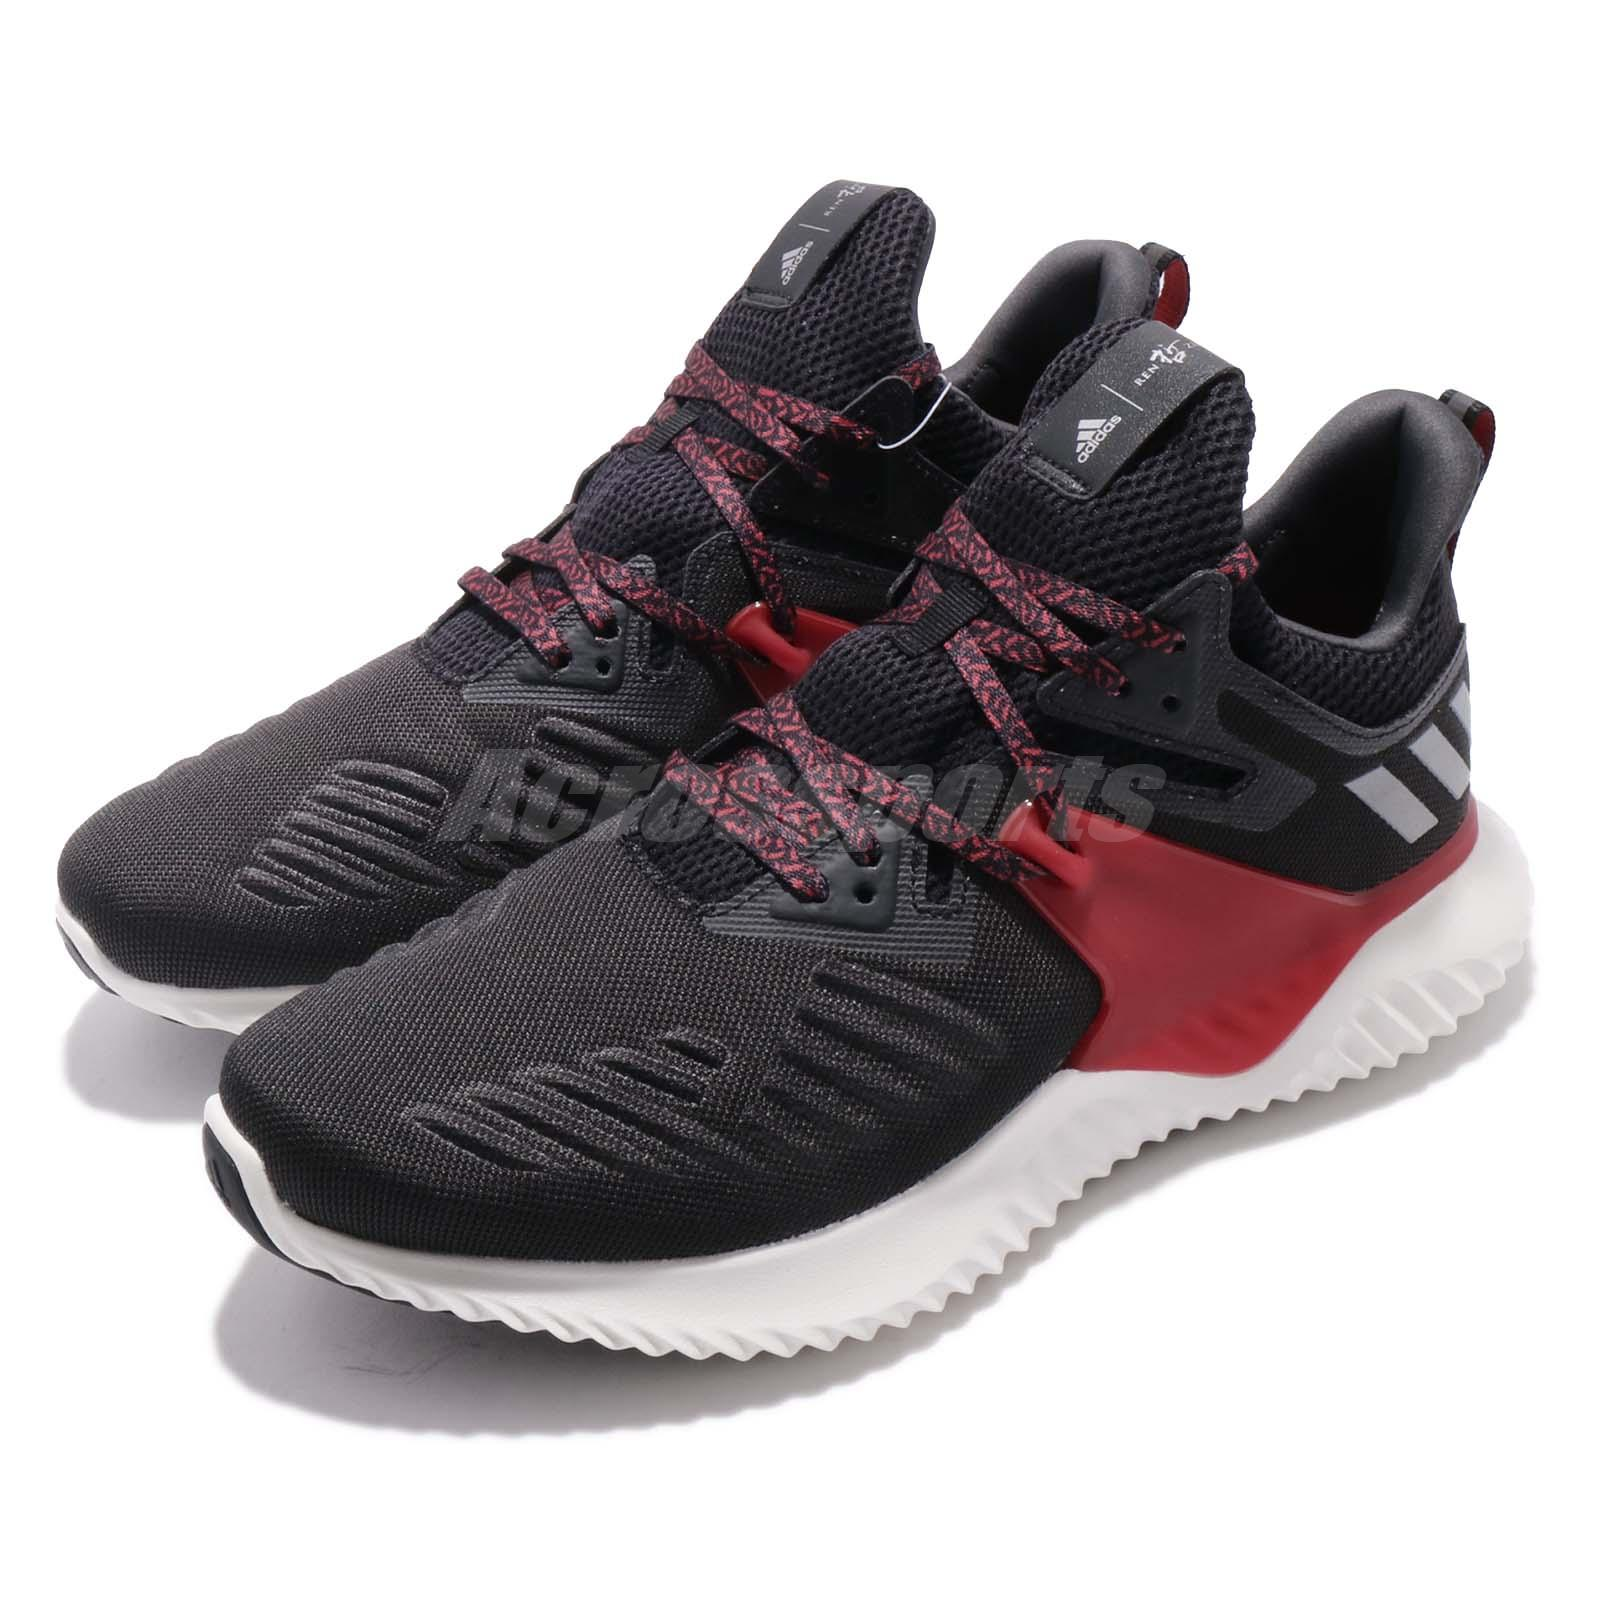 Details about adidas Alphabounce Beyond 2 M CNY Chinese New Year Black Red  Men Shoes G28011